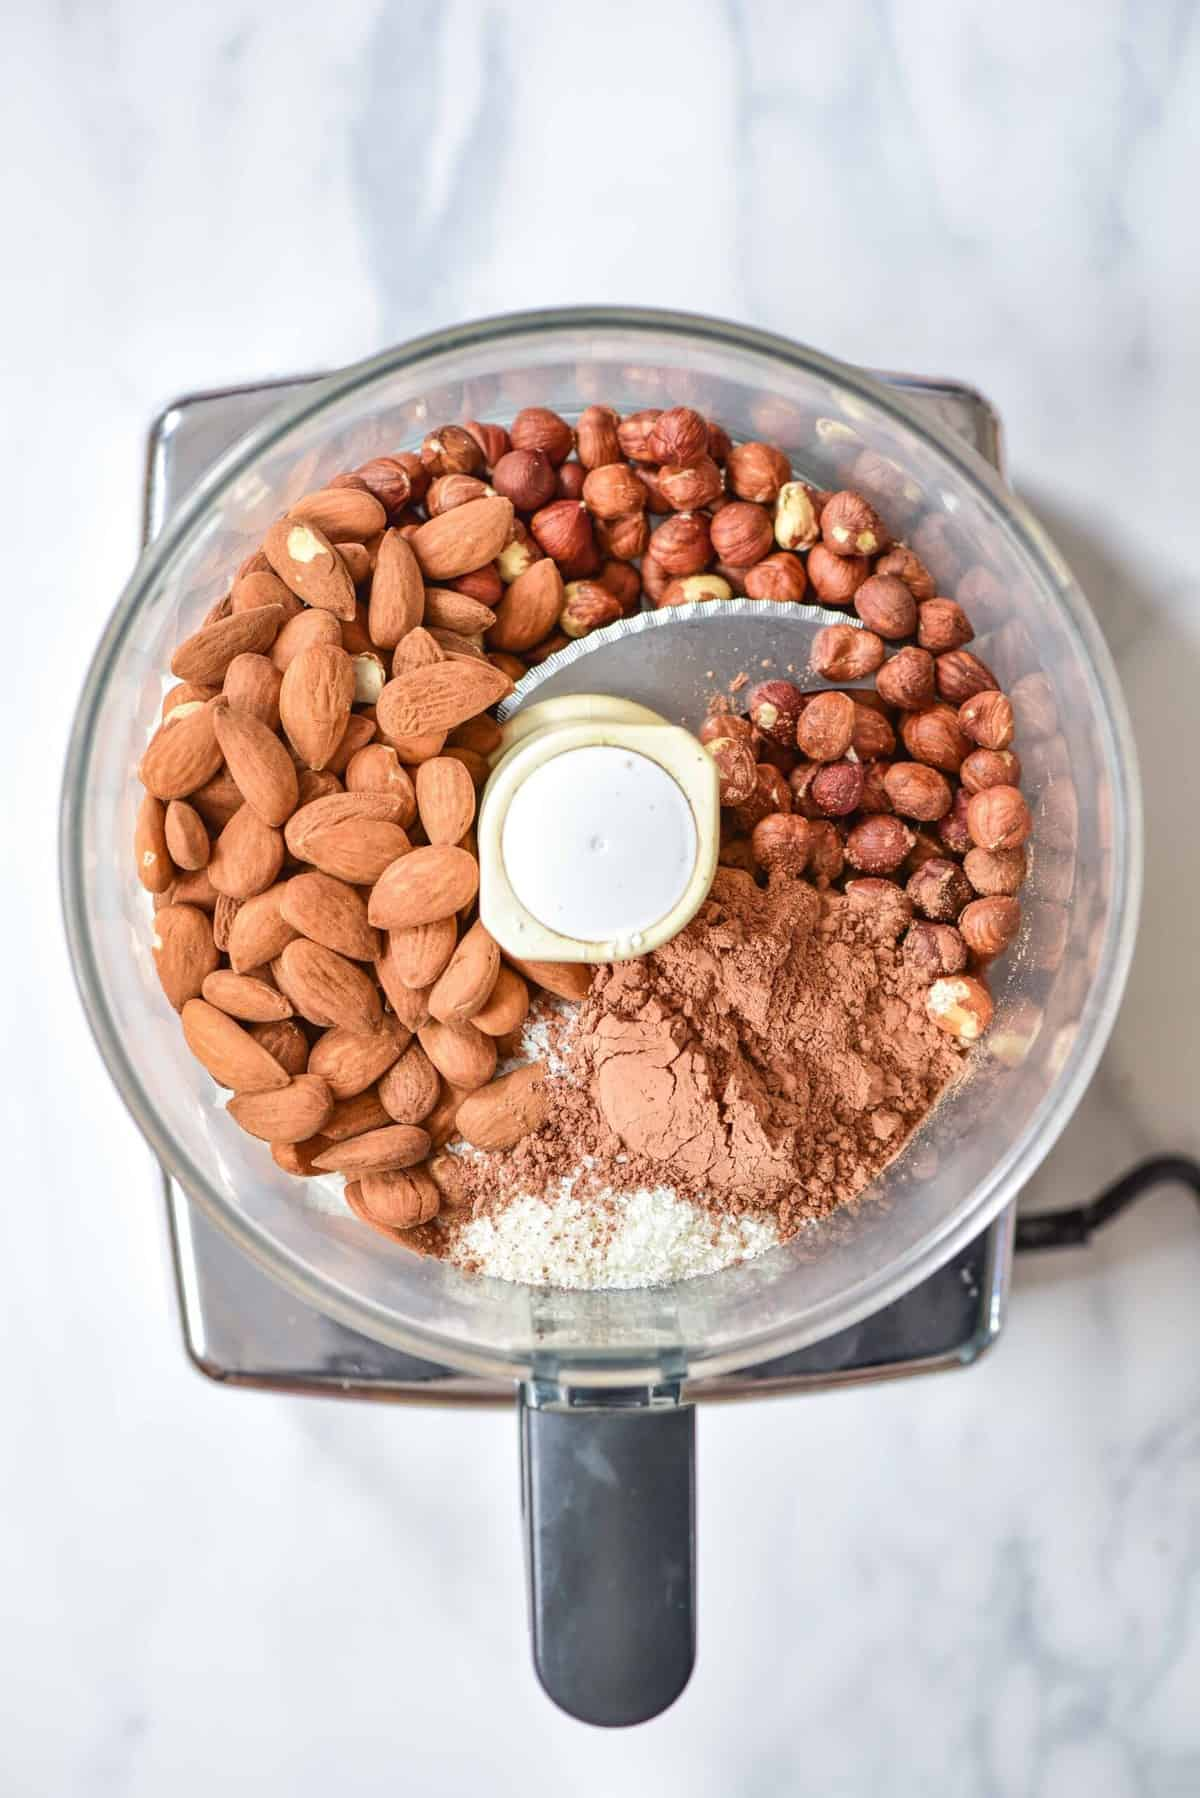 Nuts and cacao powder in a blender